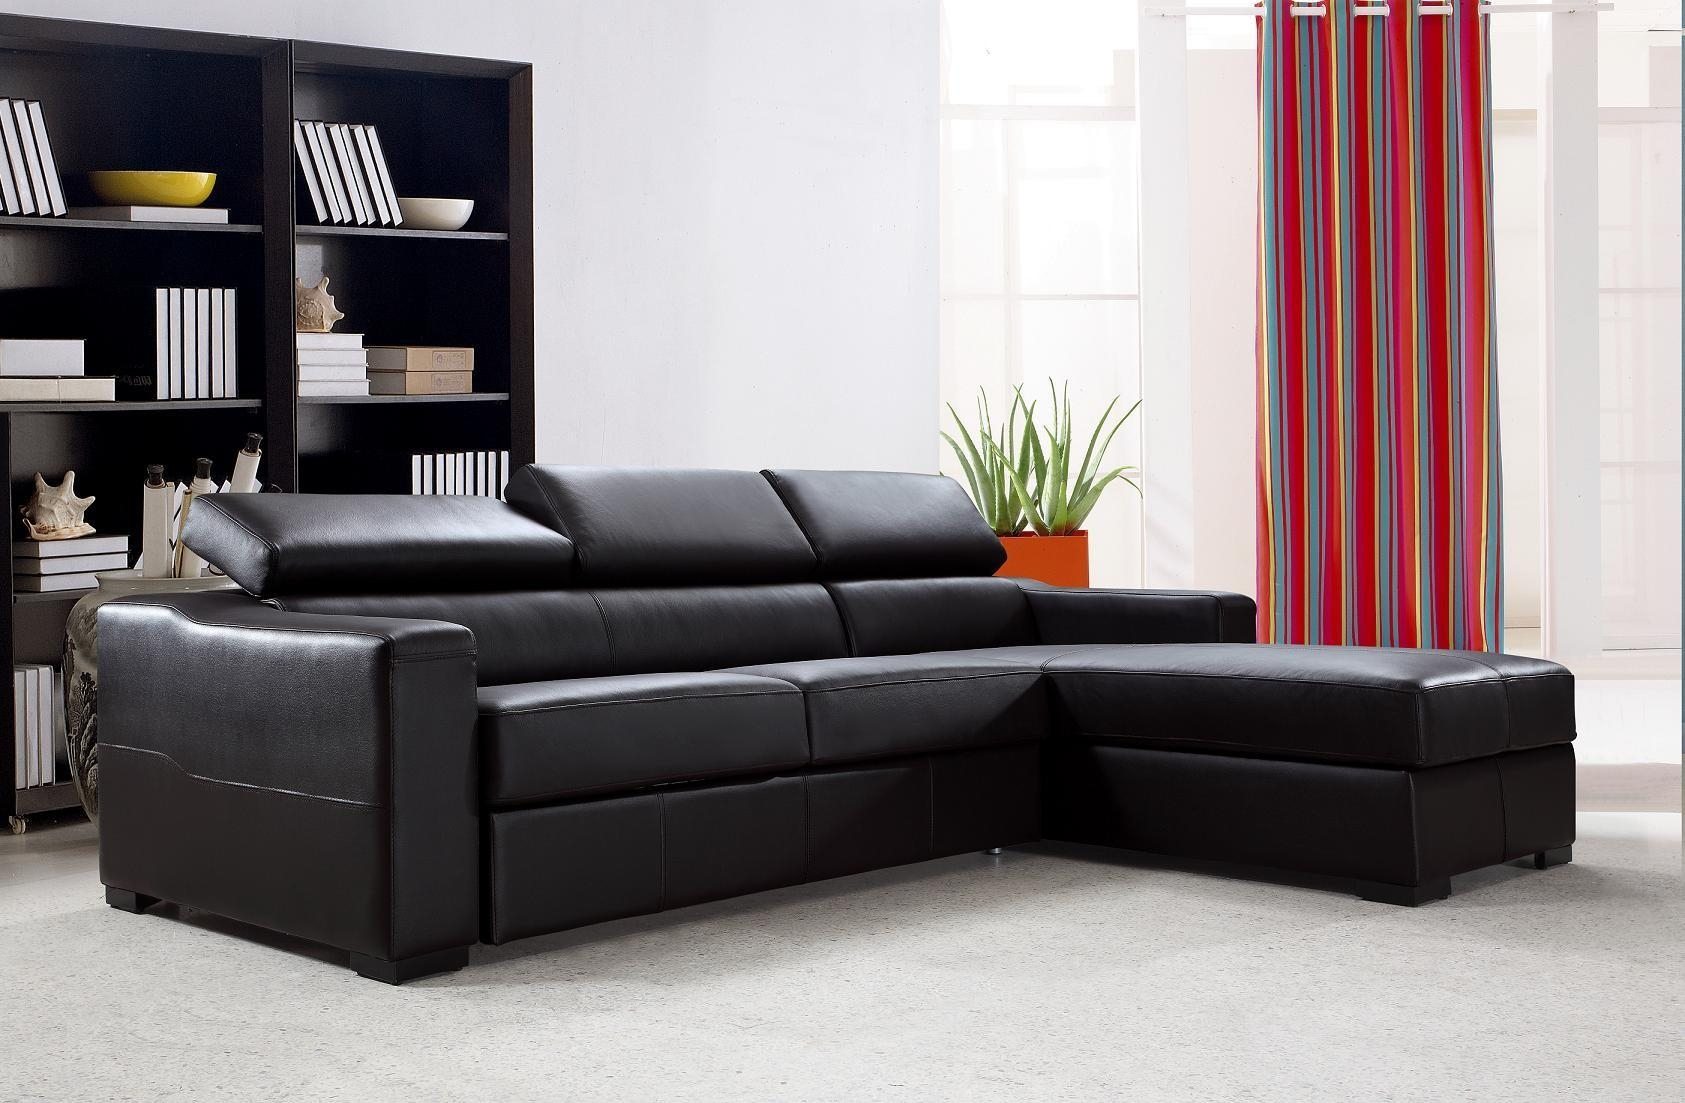 Flip Reversible Espresso Leather Sectional Sofa Bed W/ Storage Throughout Sectional Sofa Bed With Storage (Image 8 of 20)